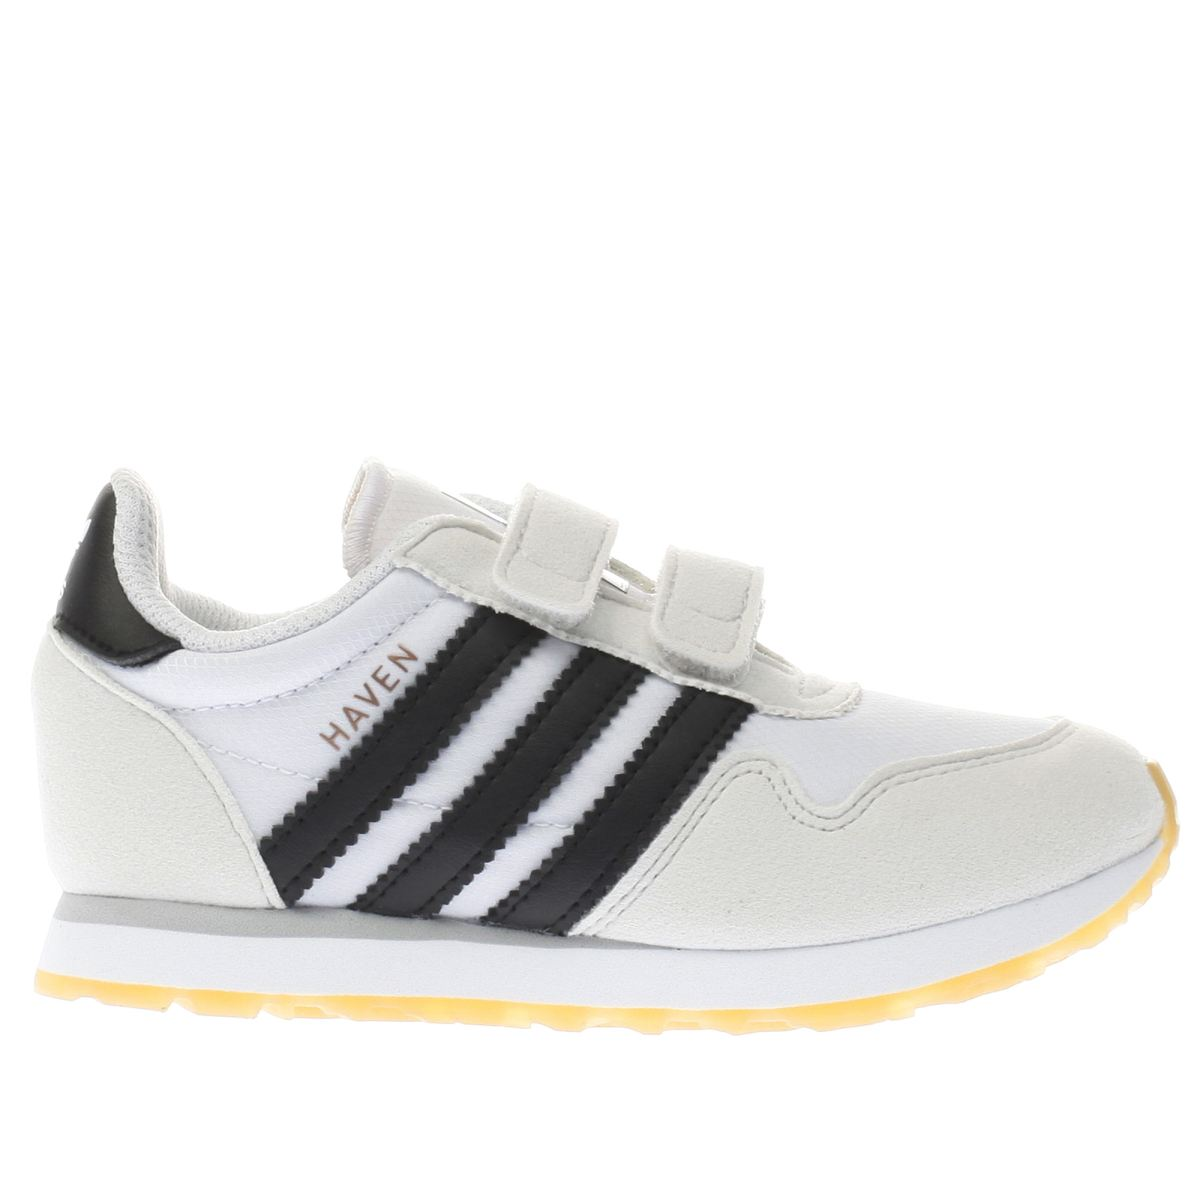 adidas white & black haven Toddler Trainers